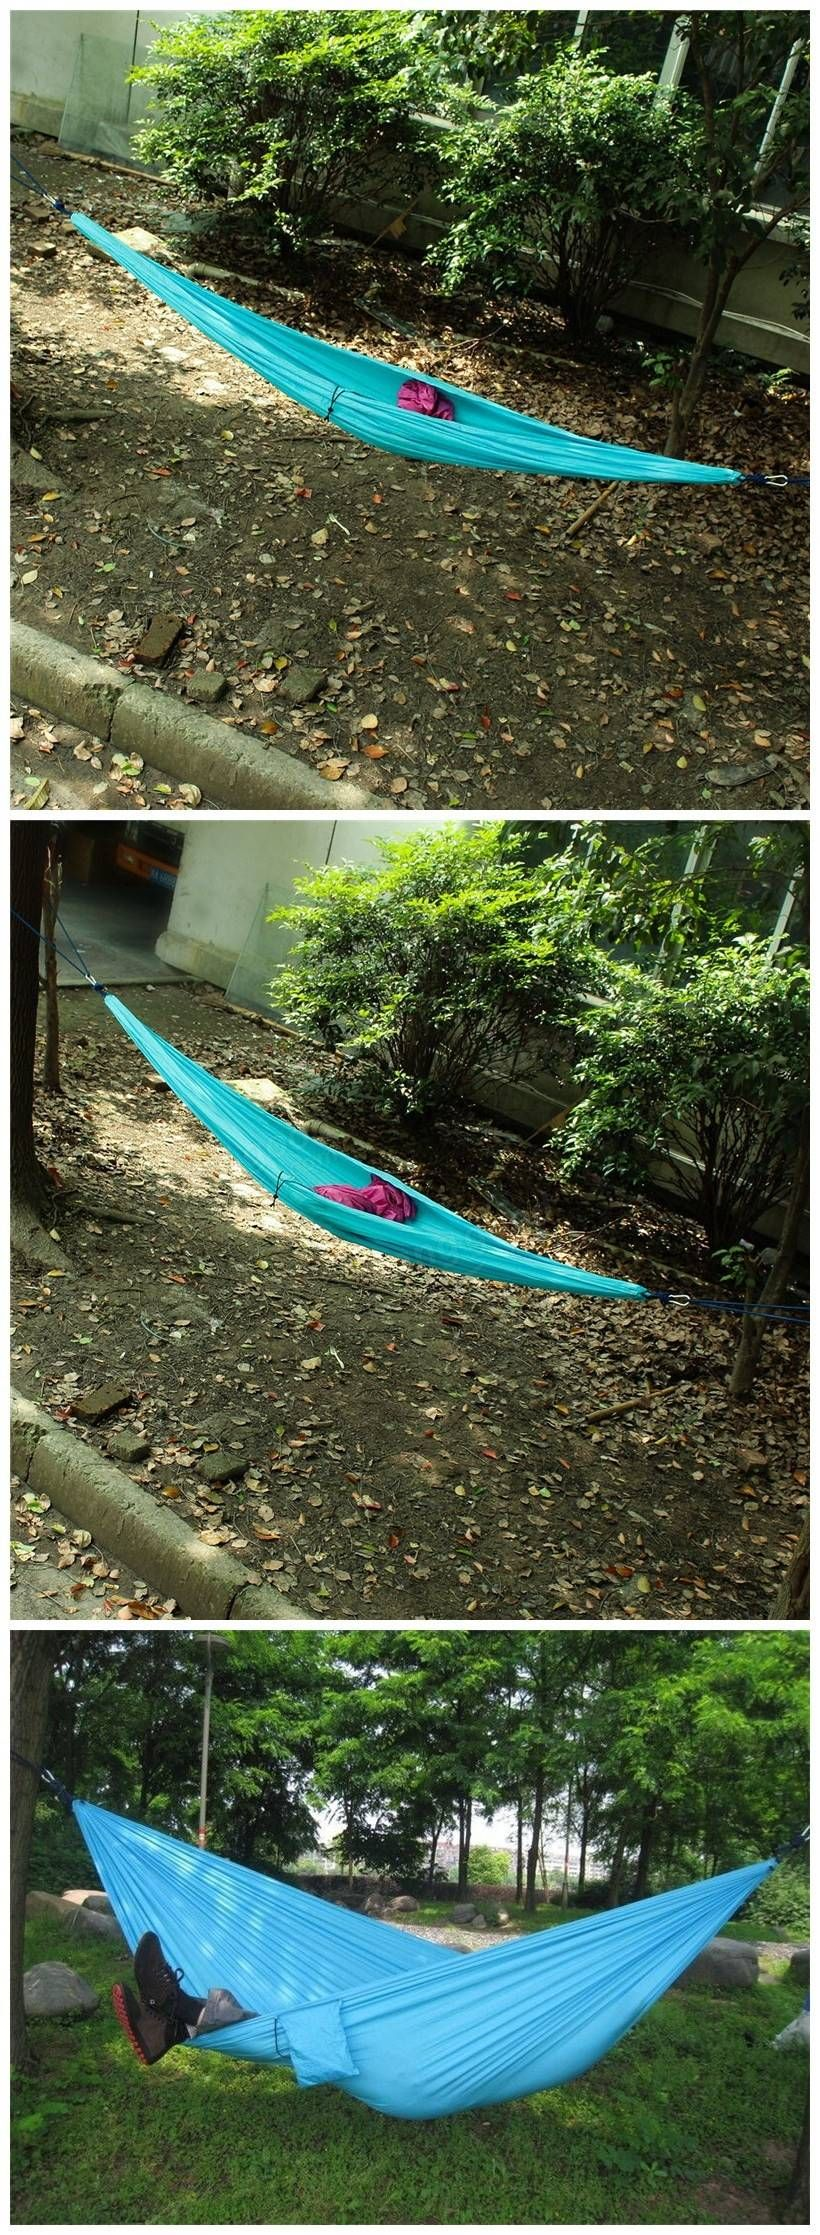 Outdoor Double Person Hammock Swing Bed Portable Parachute Travel Camping 260CM X 140CM Sale - Banggood.com